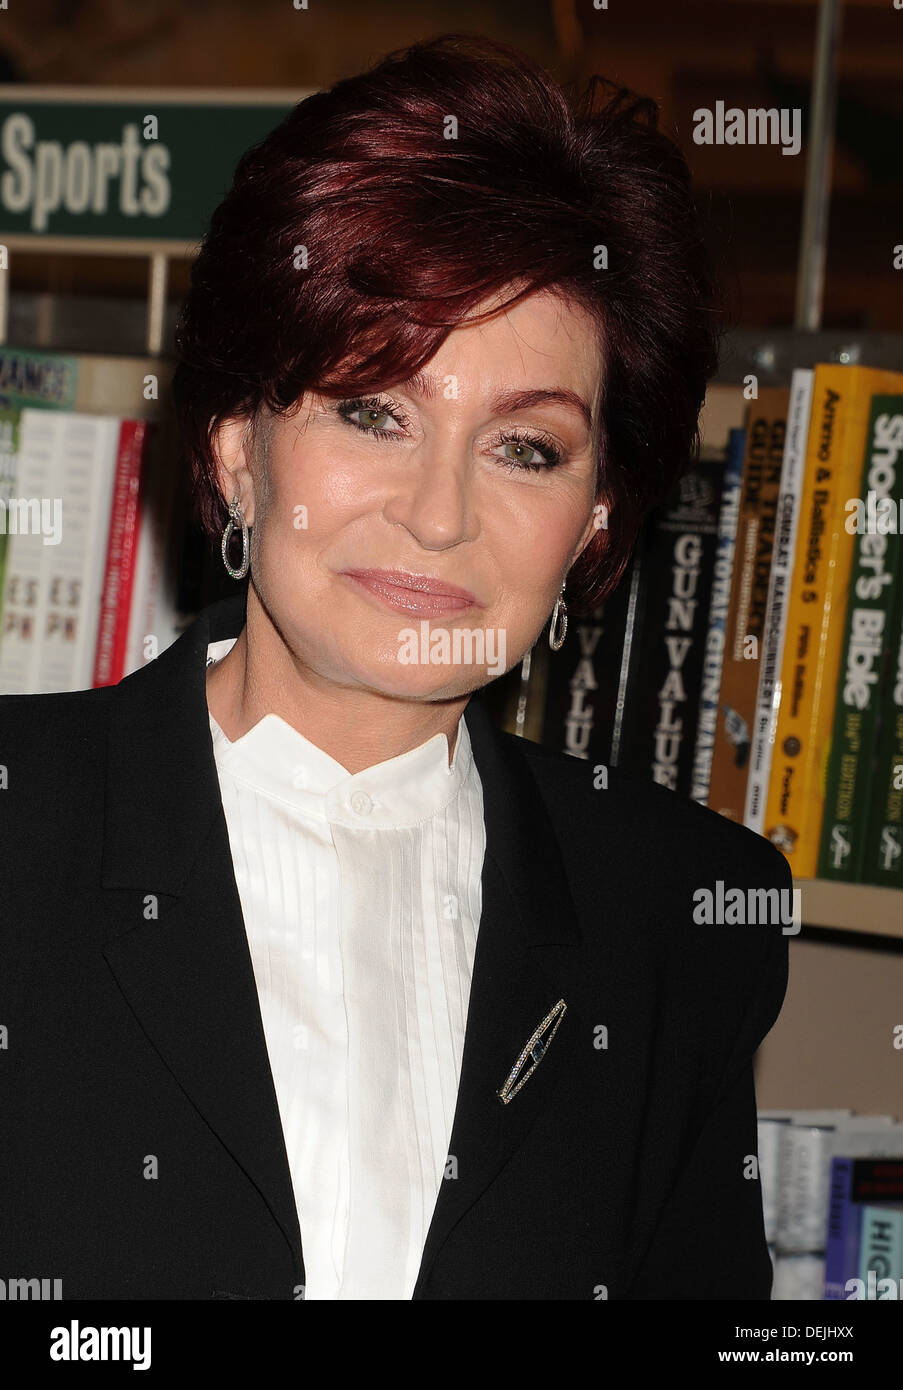 SHARON OSBOURNE  English media personality lat the launch of  her book in September 2013. Photo Jeffrey Mayer - Stock Image